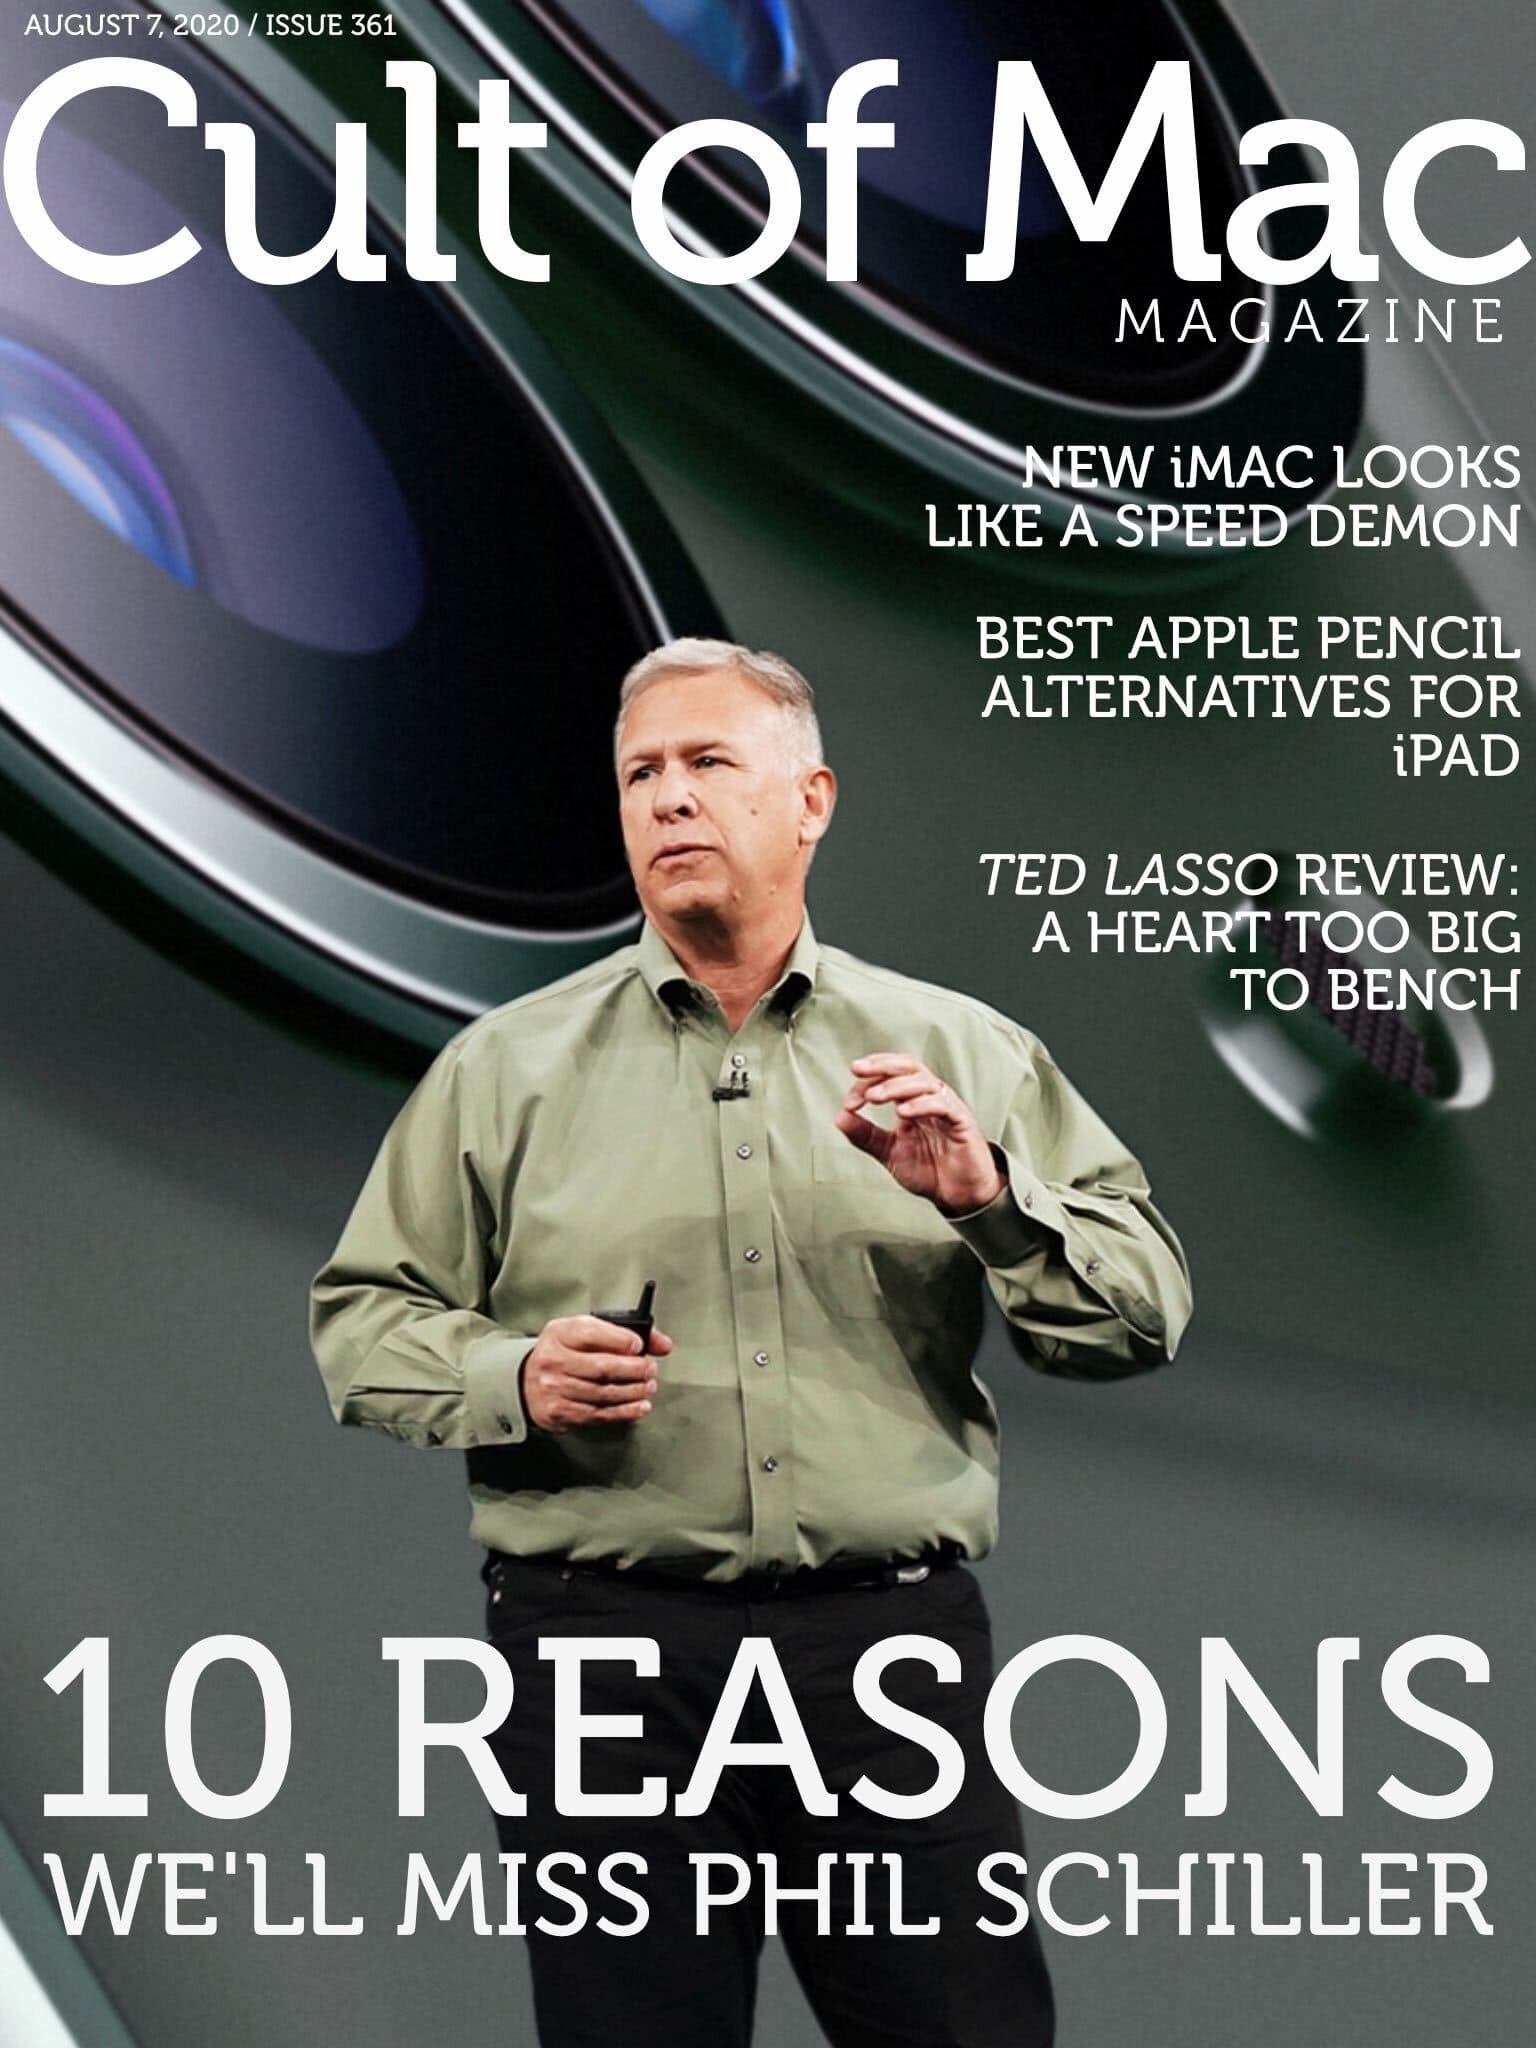 Phil Schiller's greatest hits! [Cult of Mac Magazine 361] | Cult of Mac